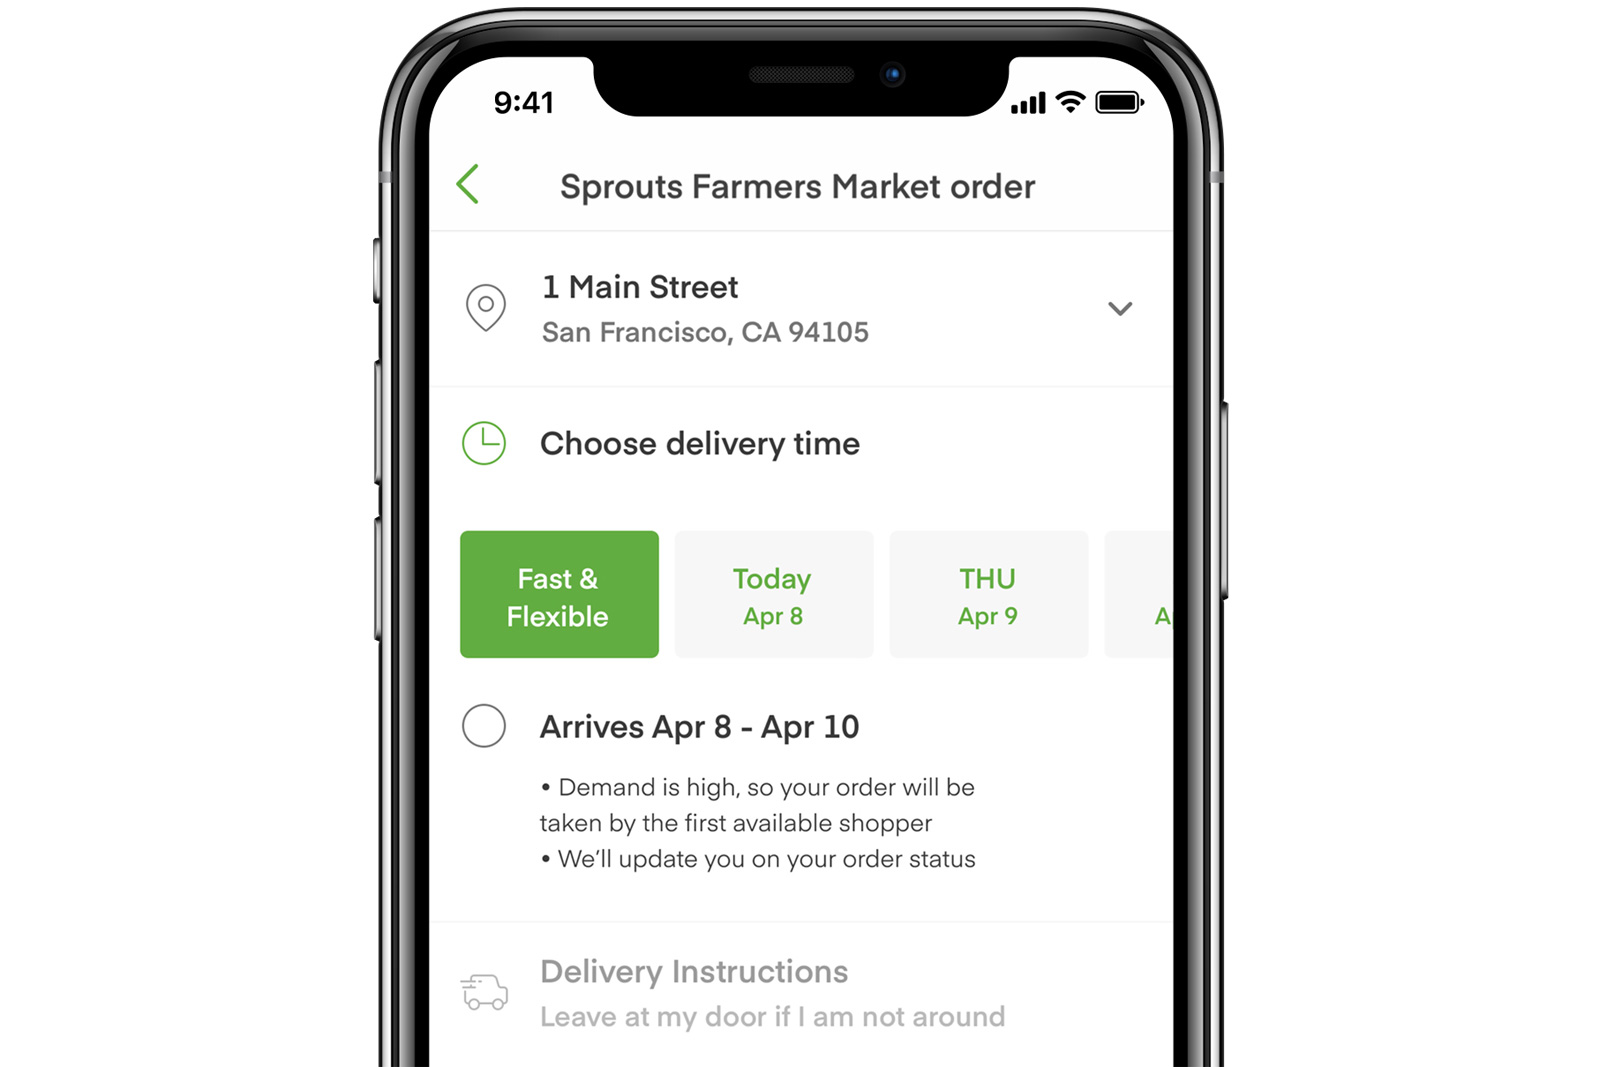 photo of Instacart hopes to expedite deliveries with 'first available shopper' option image